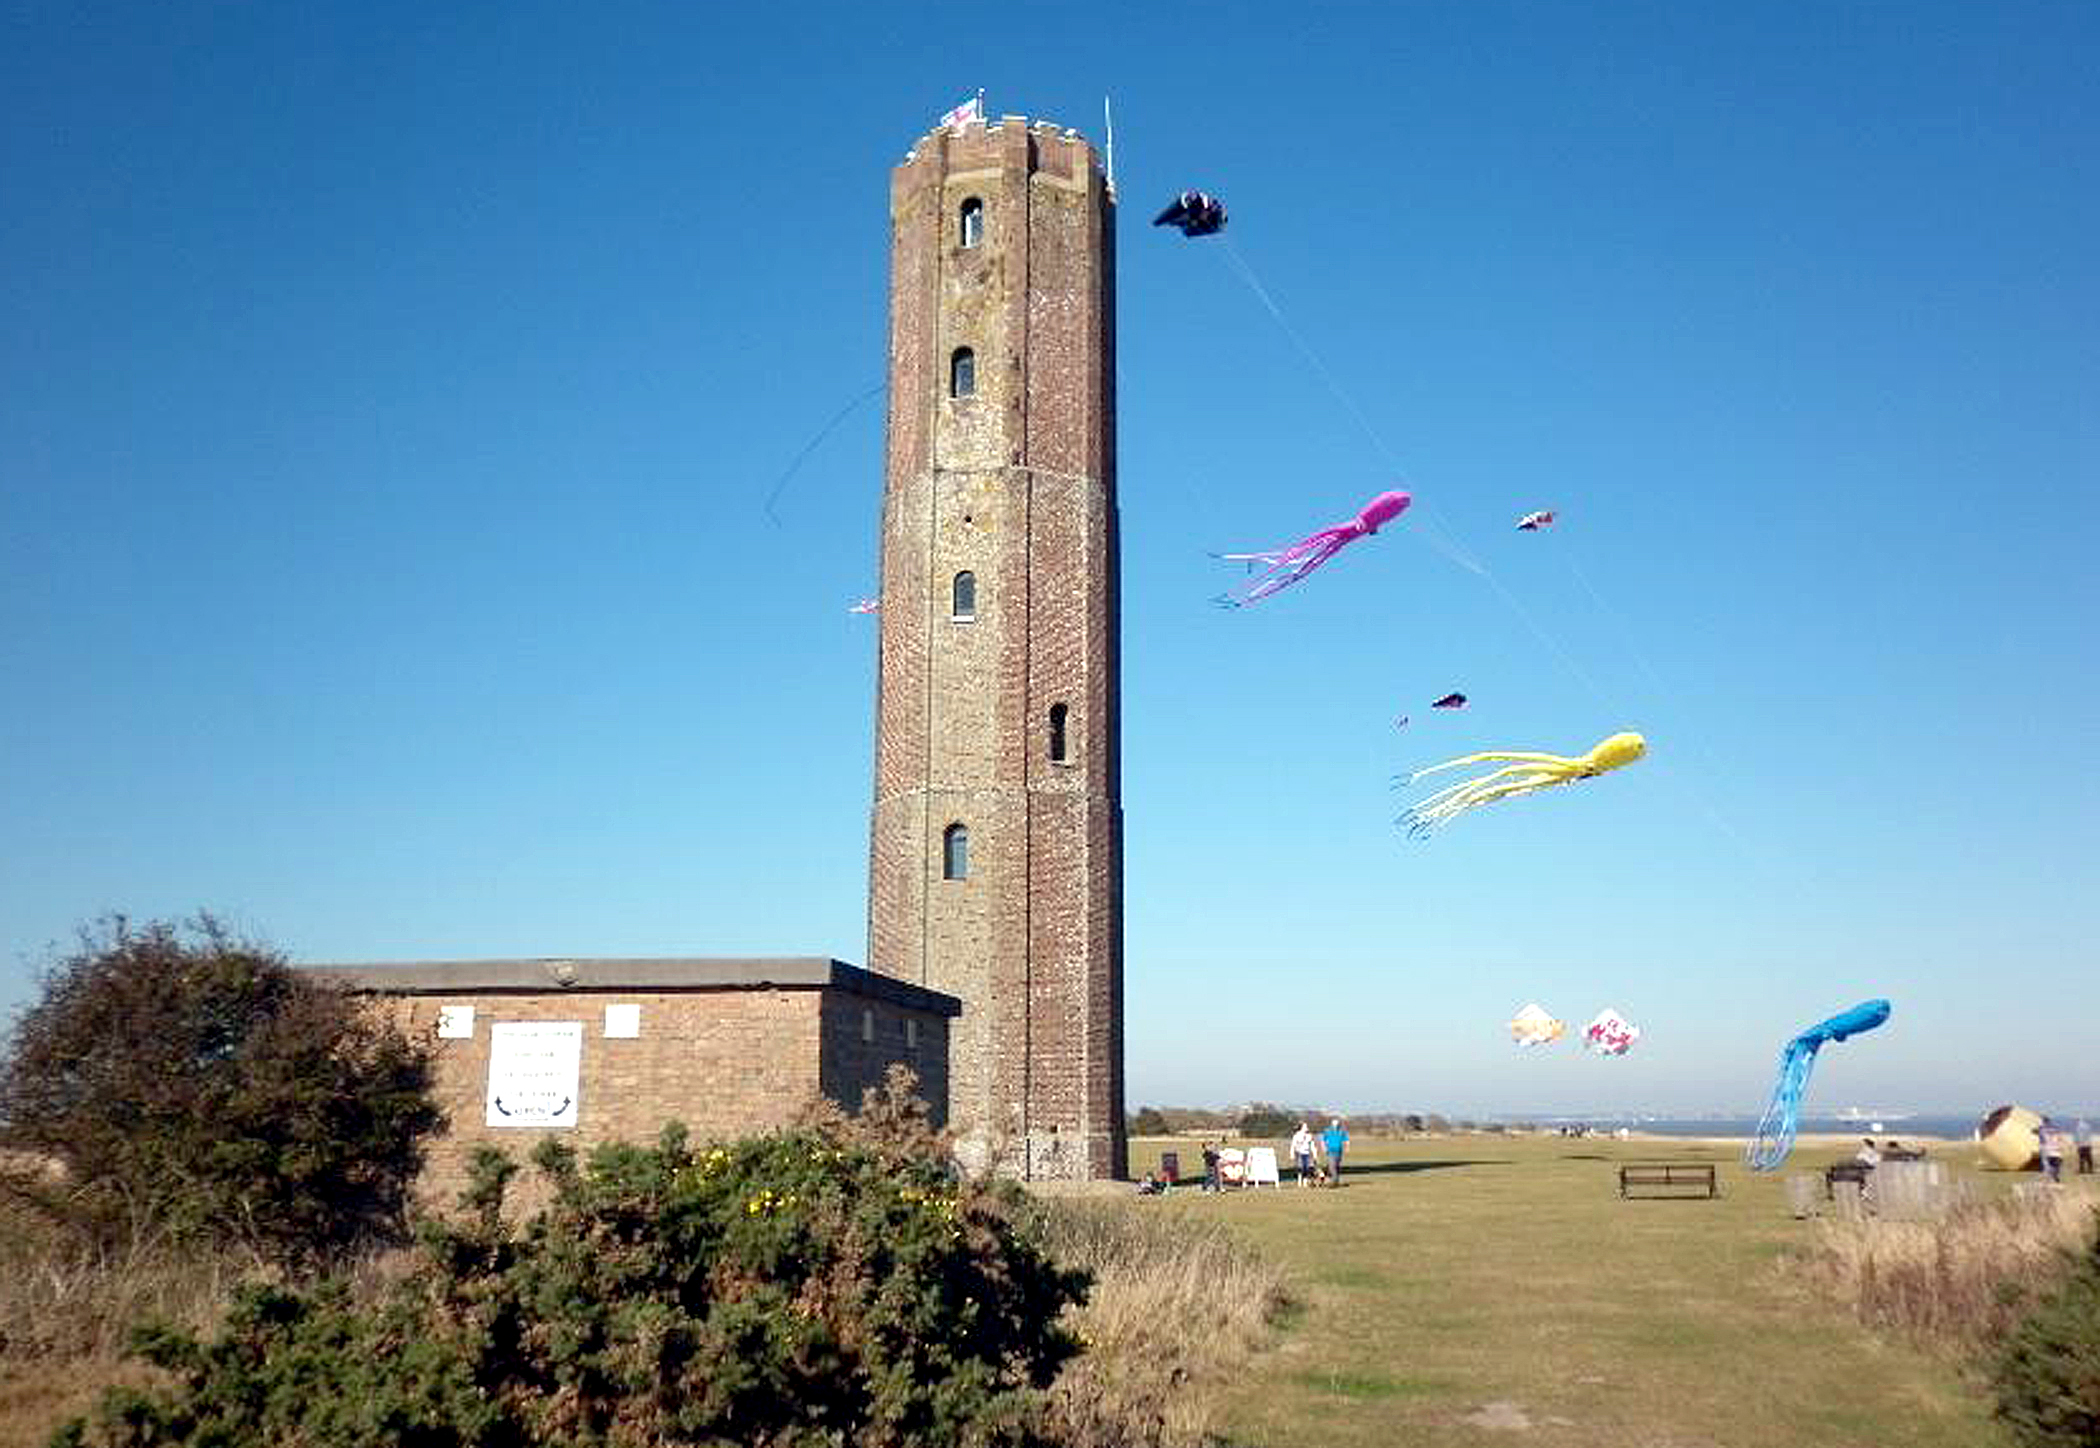 Kites at the Naze Tower in Walton, photographed by reader Sally Harris.